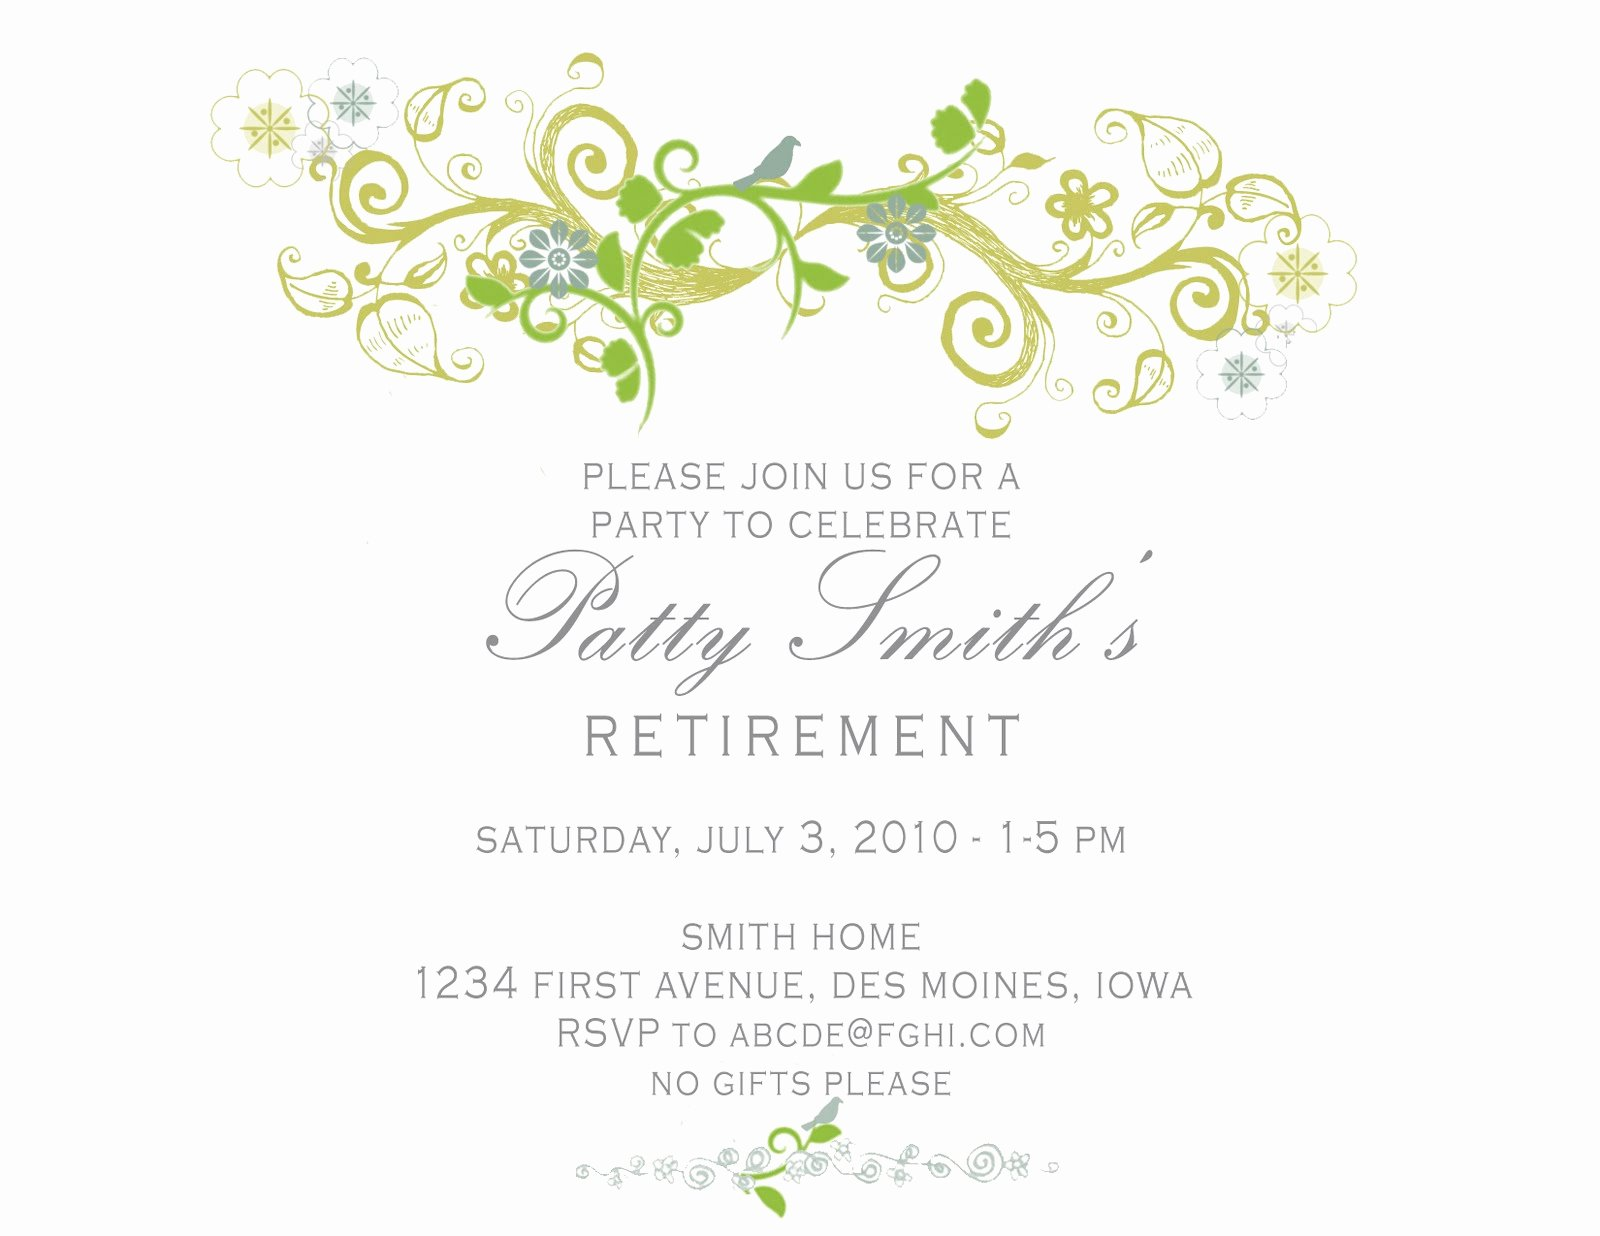 Retirement Party Invitations Template Best Of Idesign A Retirement Party Invitation